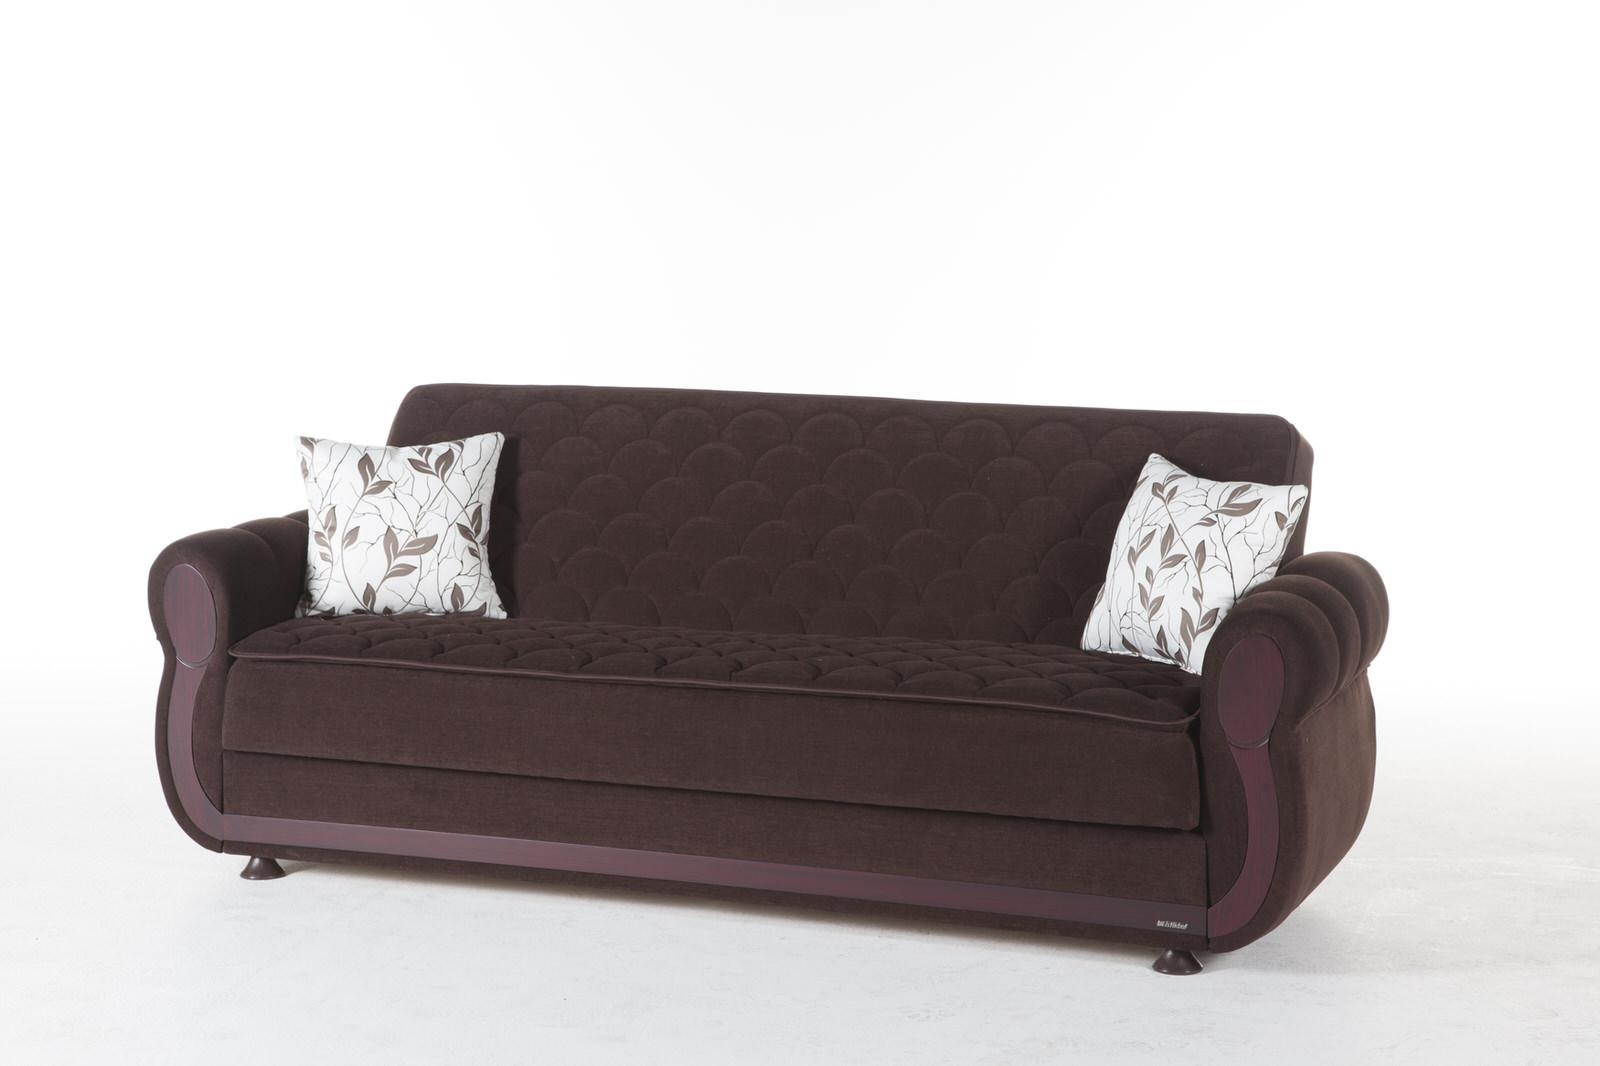 Argos Colins Brown Convertible Sofa Bedsunset In Convertible Sofa Chair Bed (View 15 of 20)